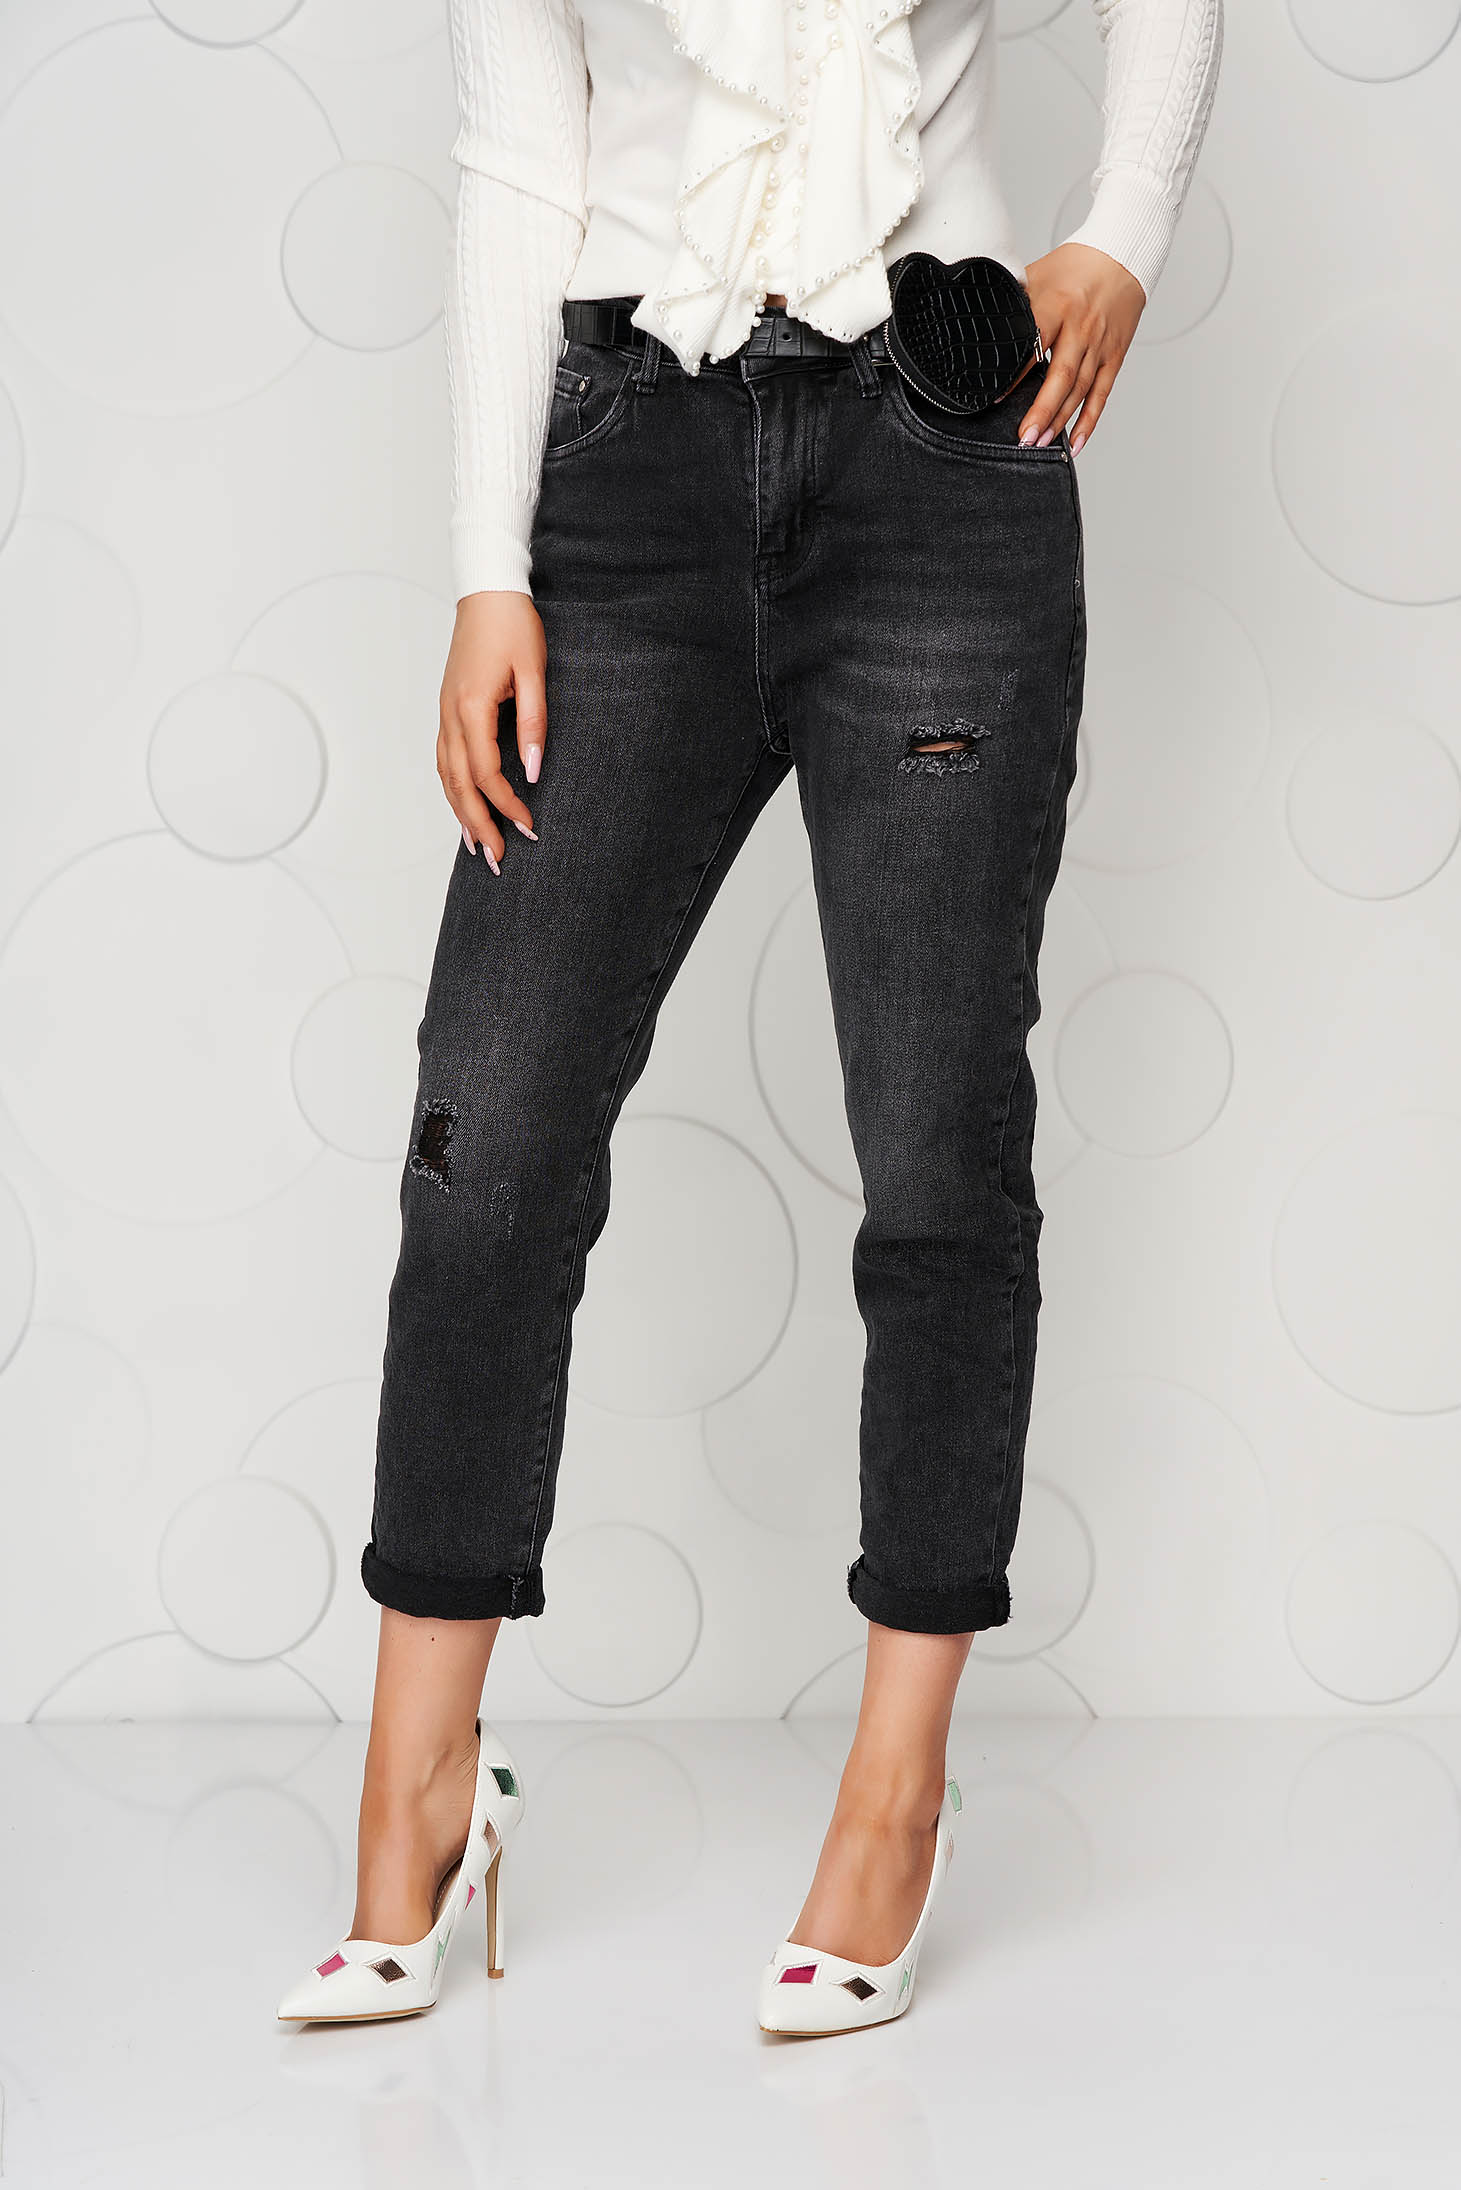 Black jeans accessorized with belt small rupture of material casual